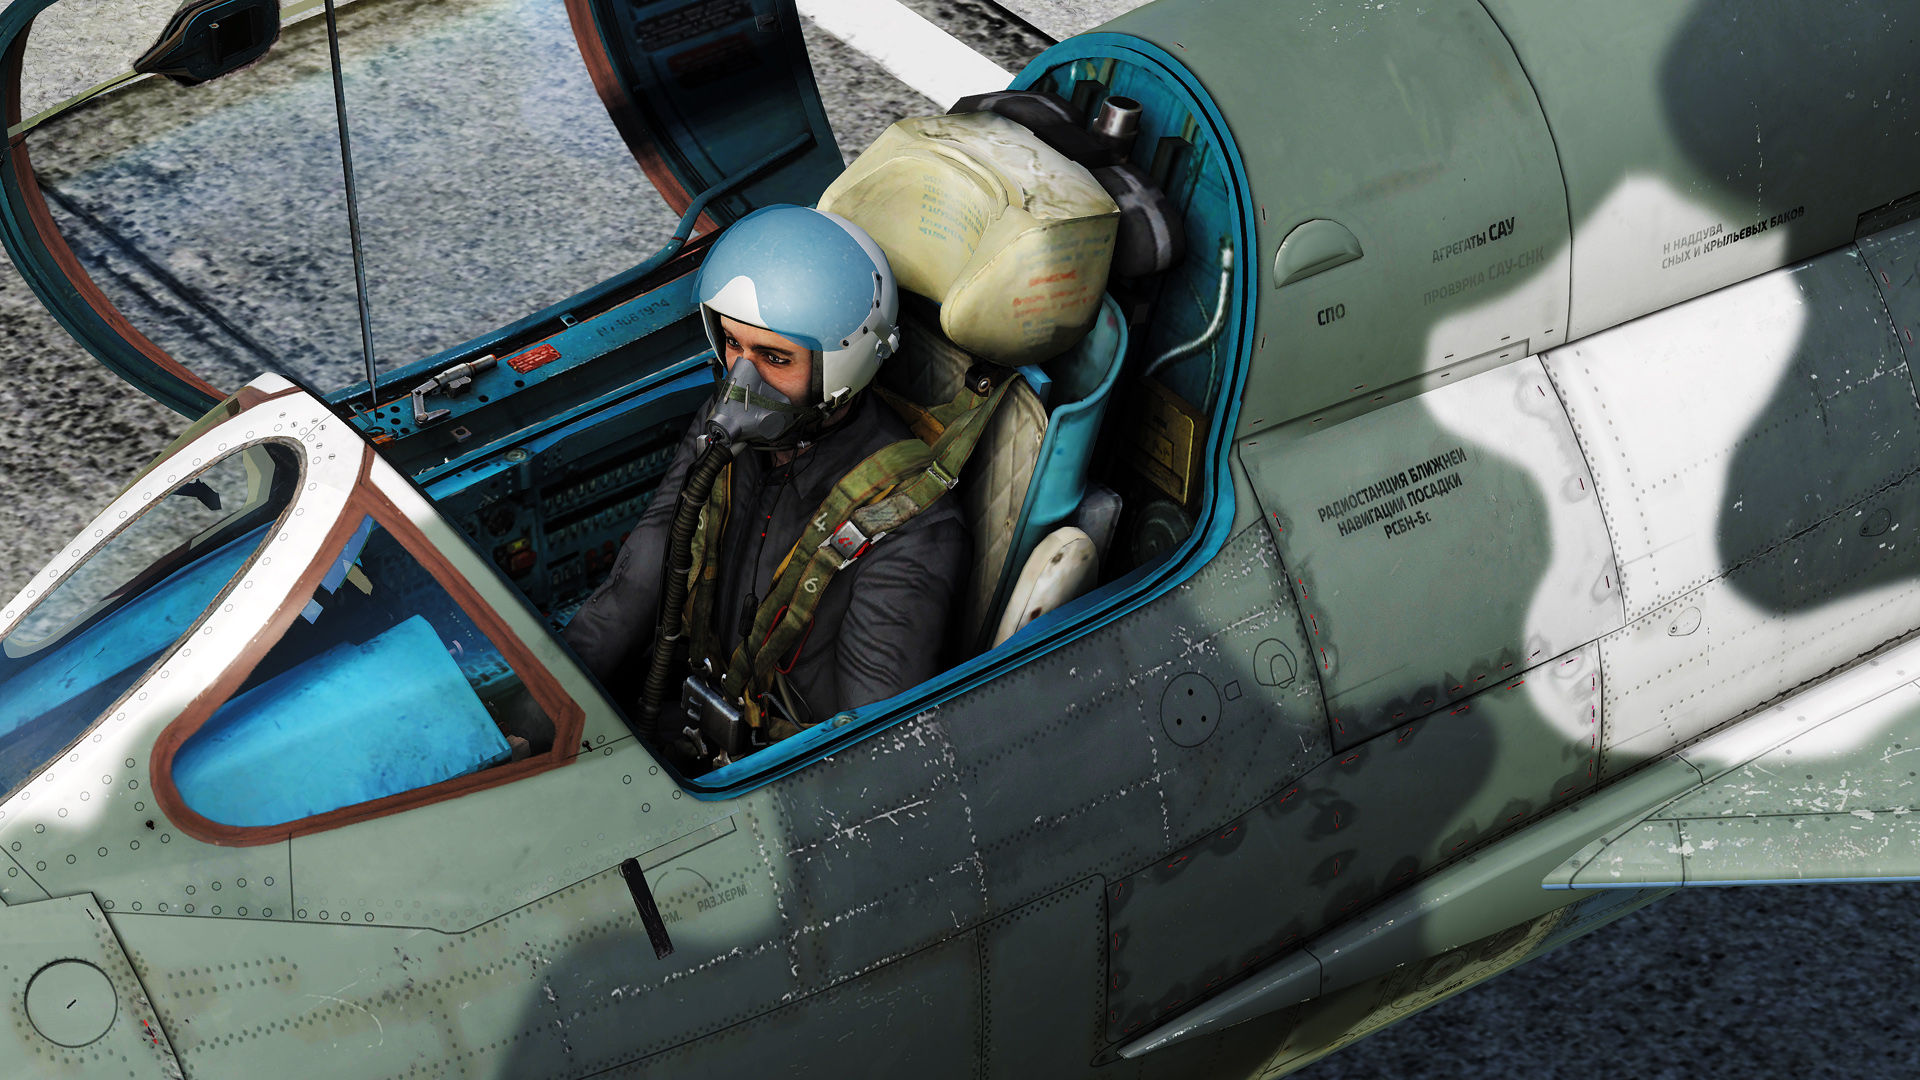 MiG-21 Pilot with dark grey suit, white helmet and blue visor